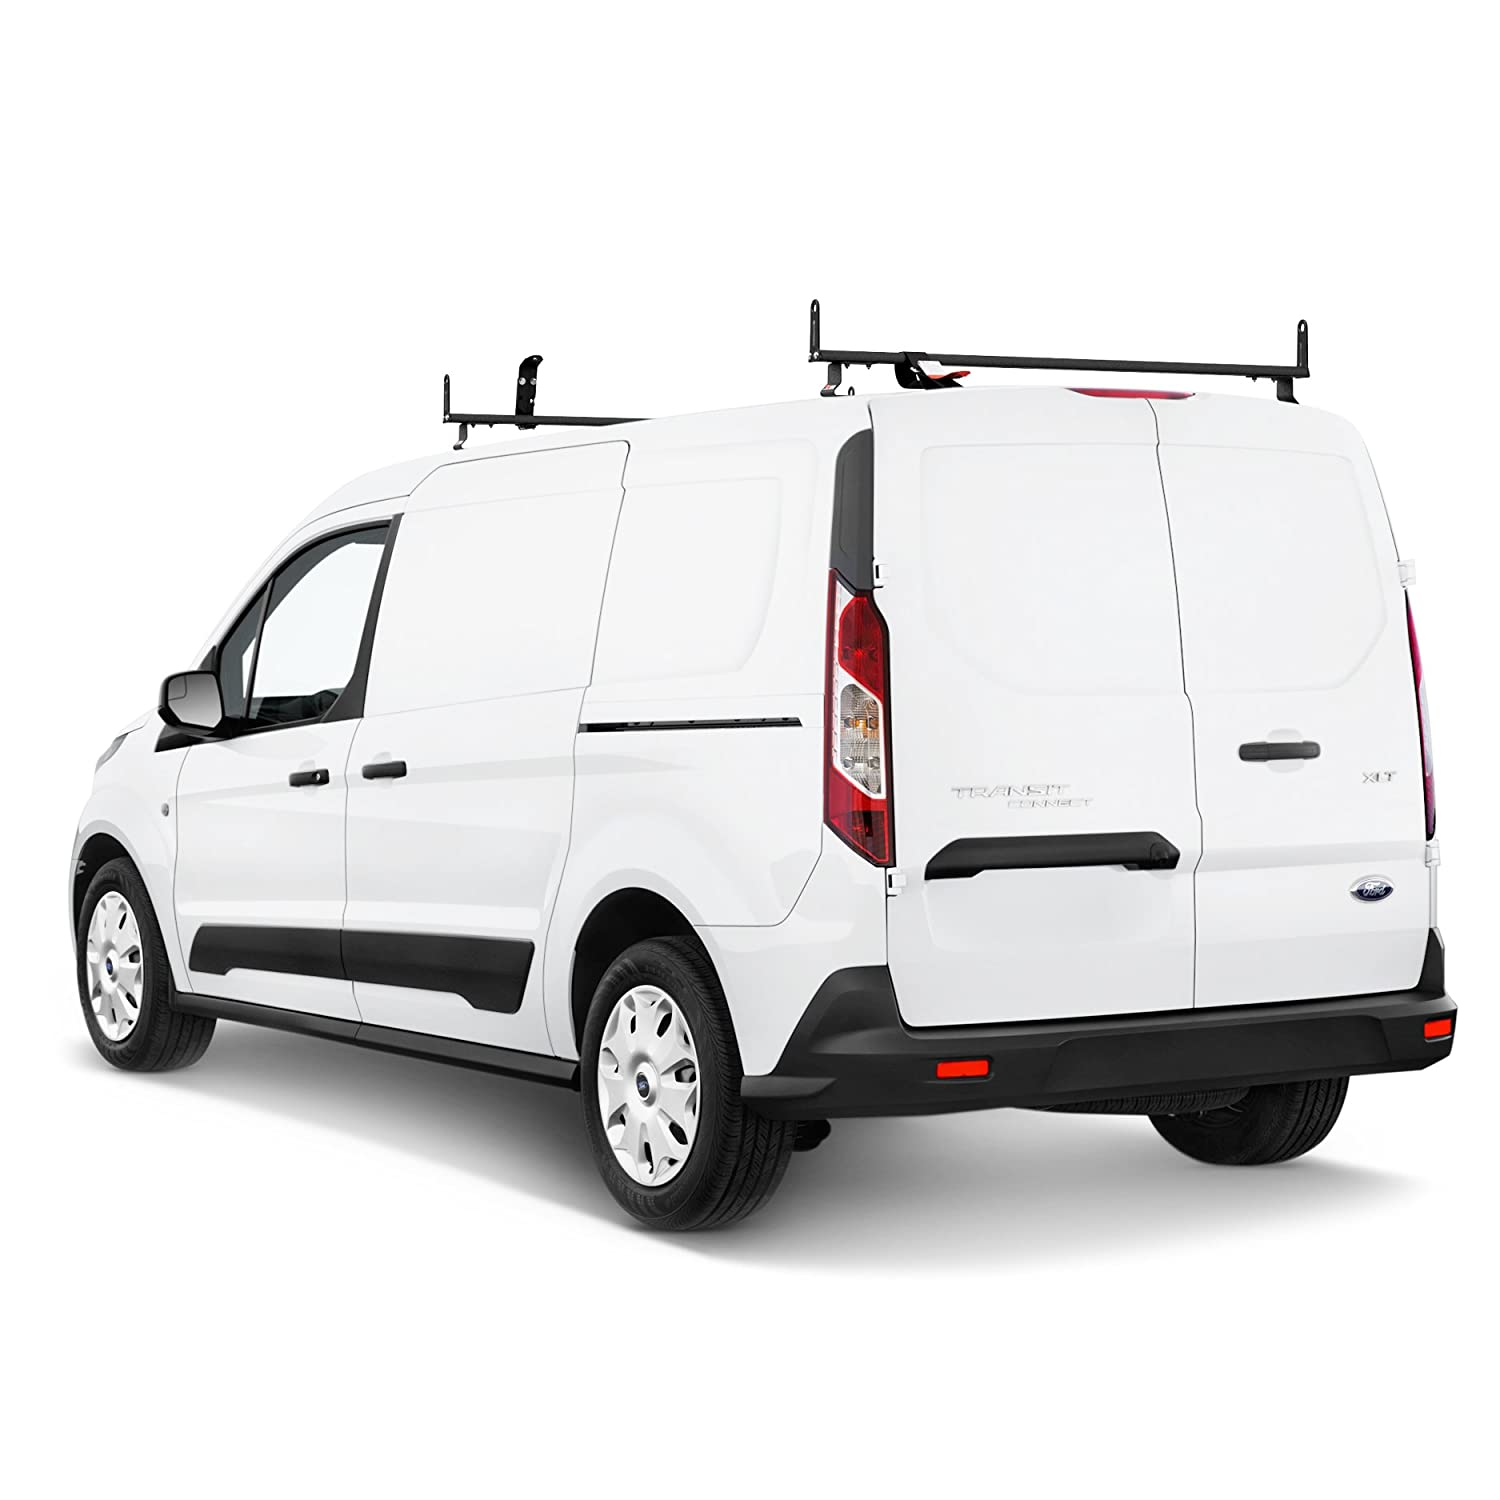 J2000 Aluminum Ladder Roof Rack 2 bar System with Accessories for a 2014-Newer Transit Connect Black